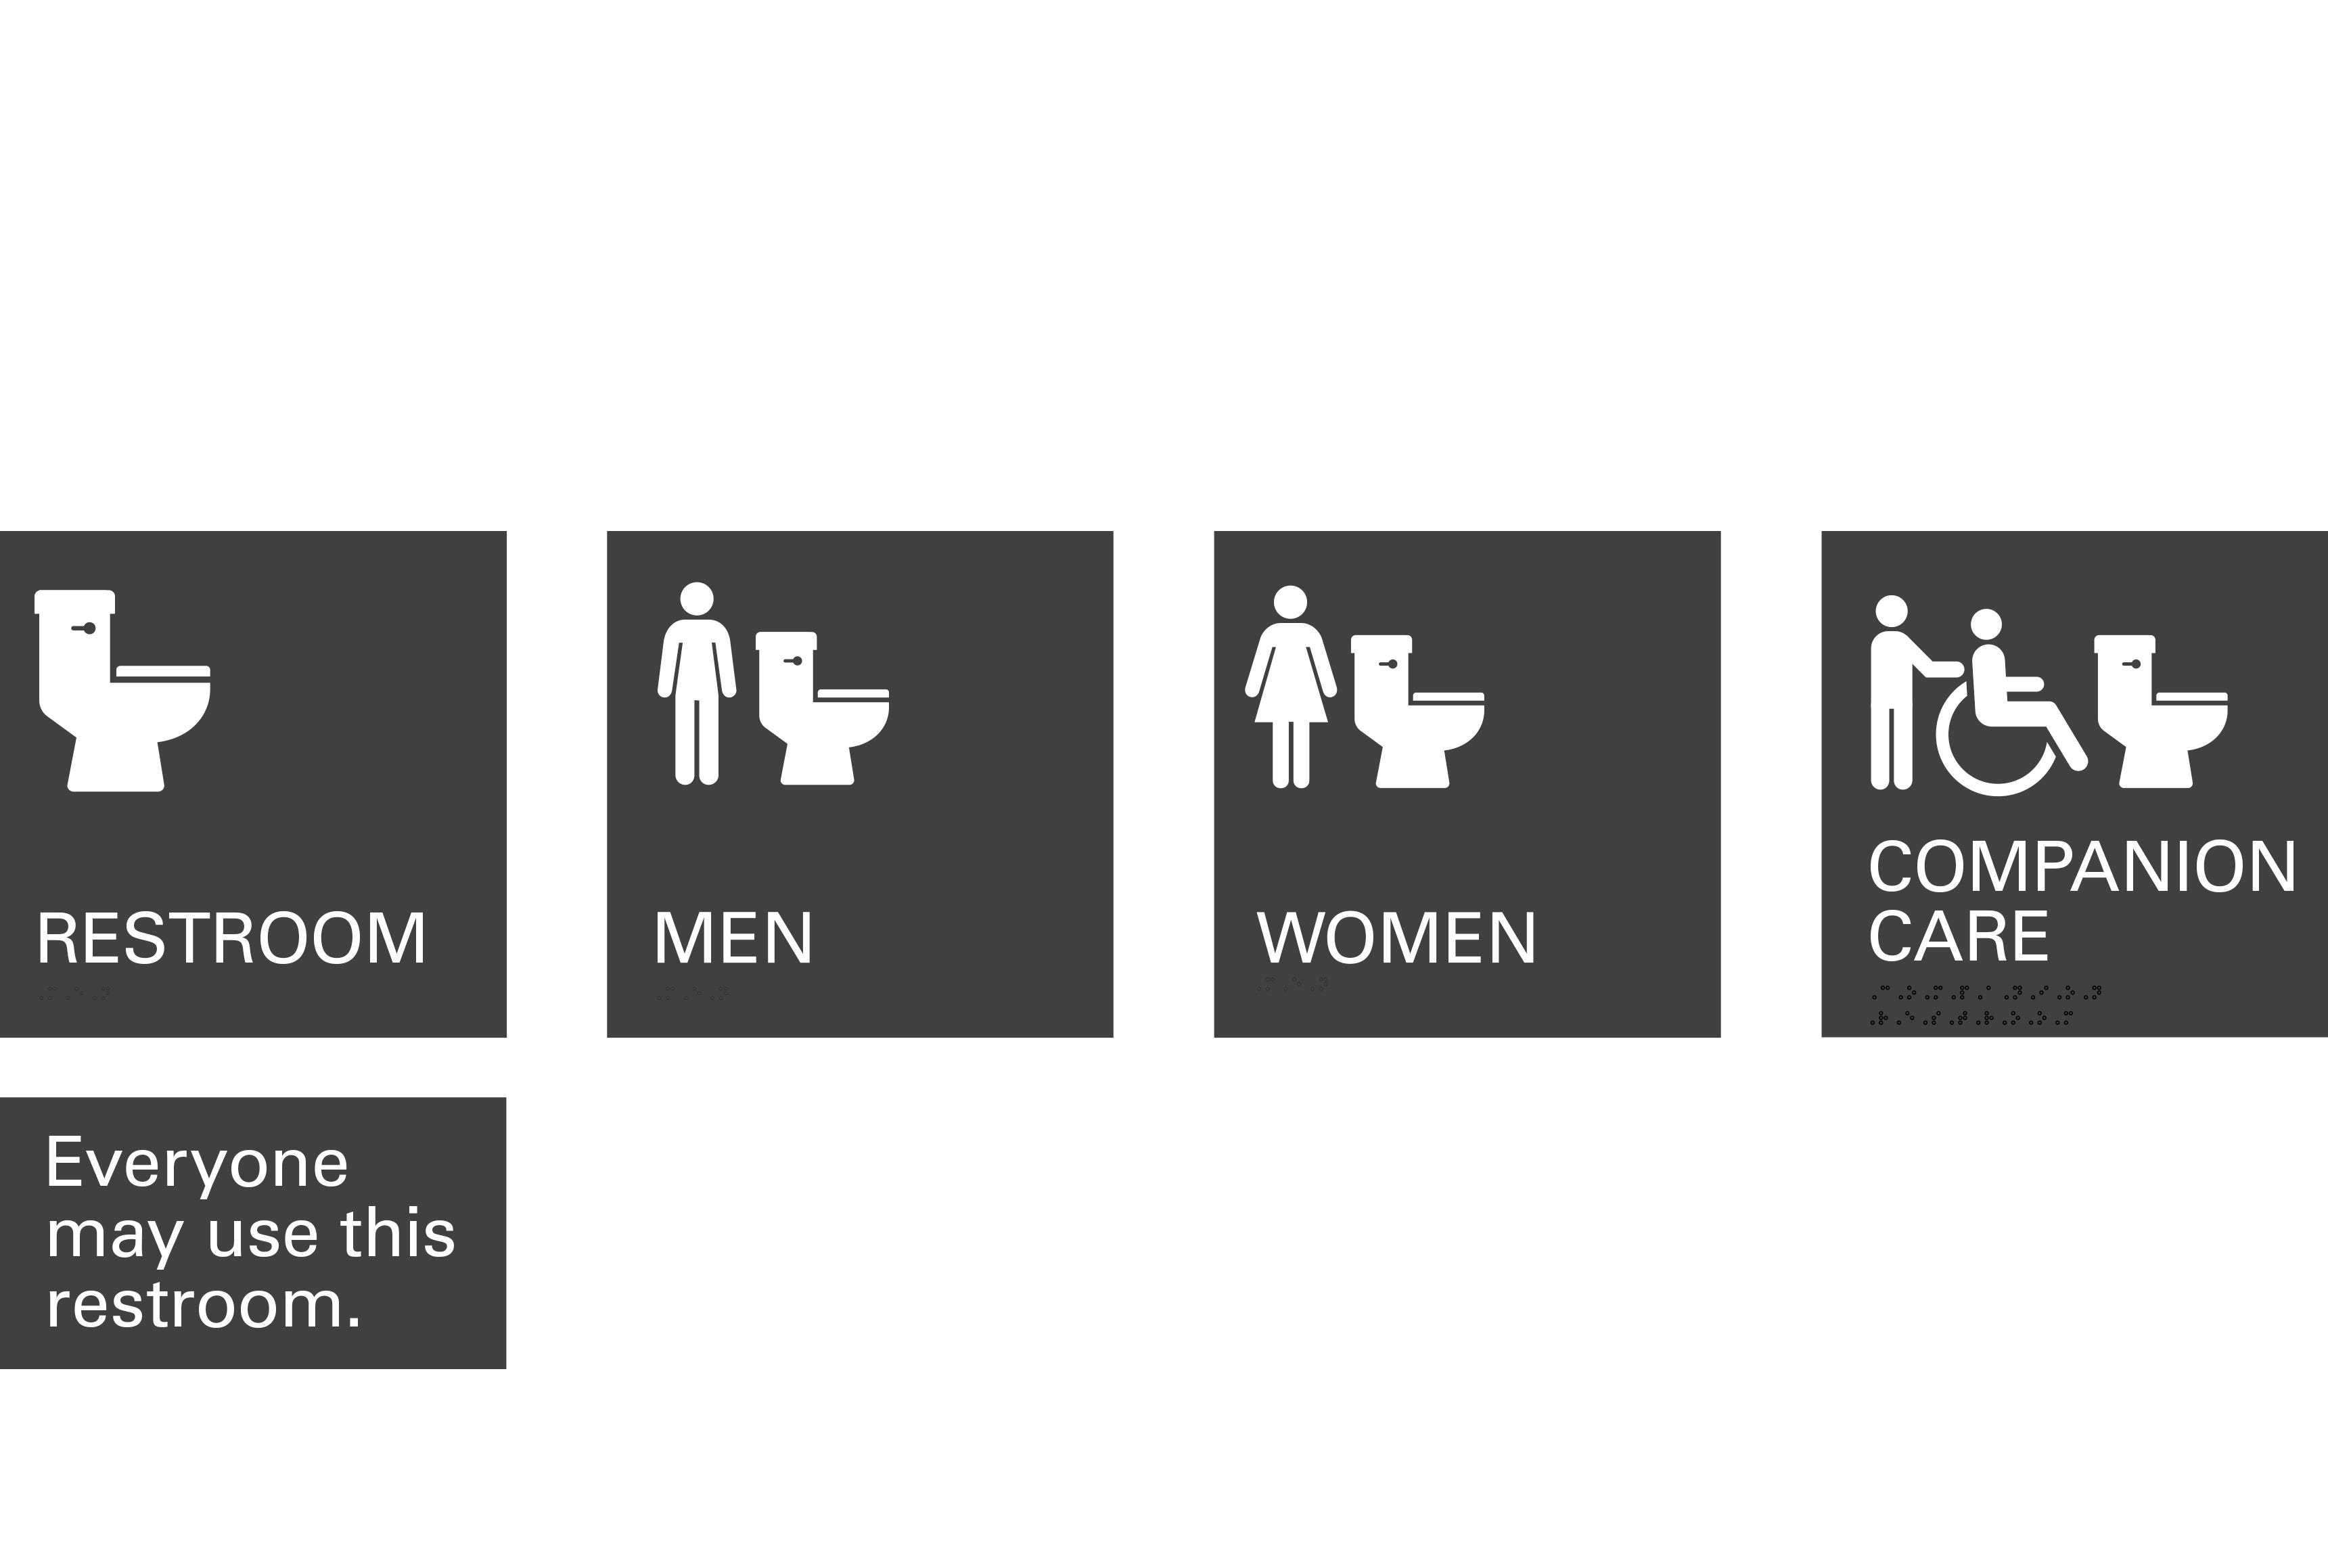 Gensler is developing a symbol for all-gender, multi-stall restrooms.